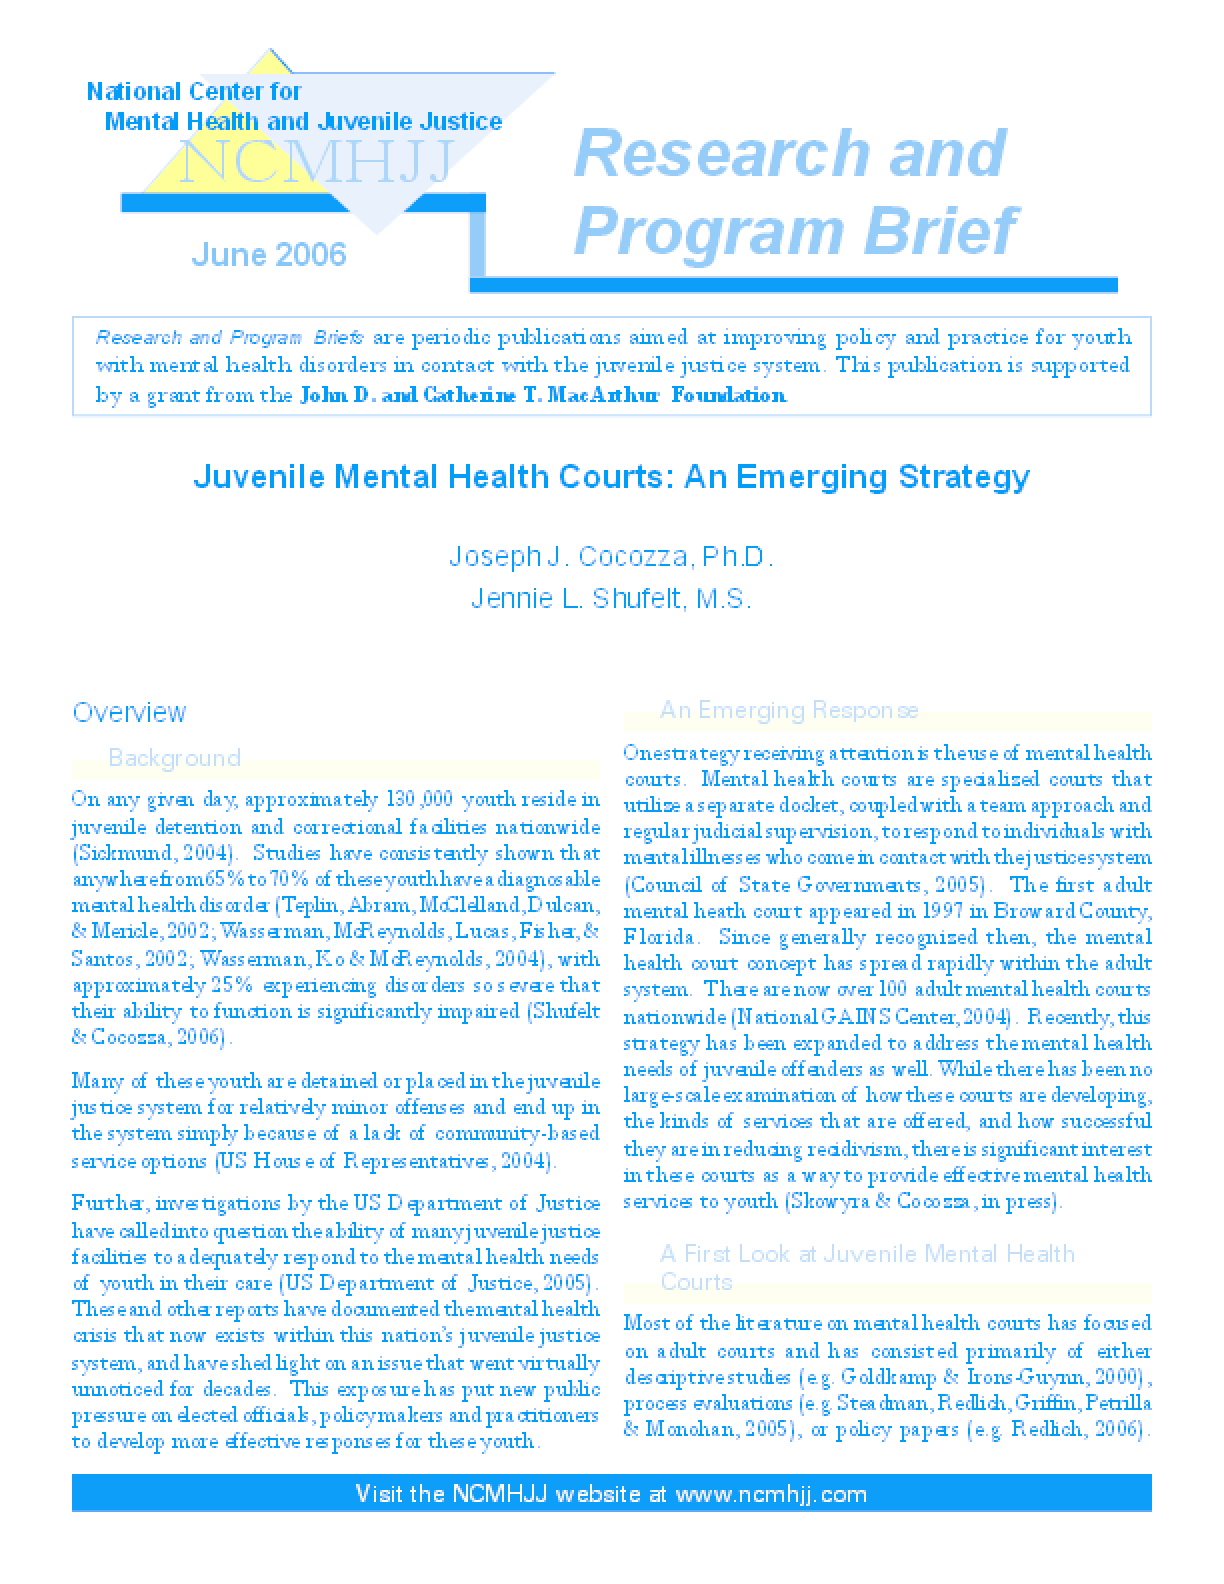 Juvenile Mental Health Courts: An Emerging Strategy